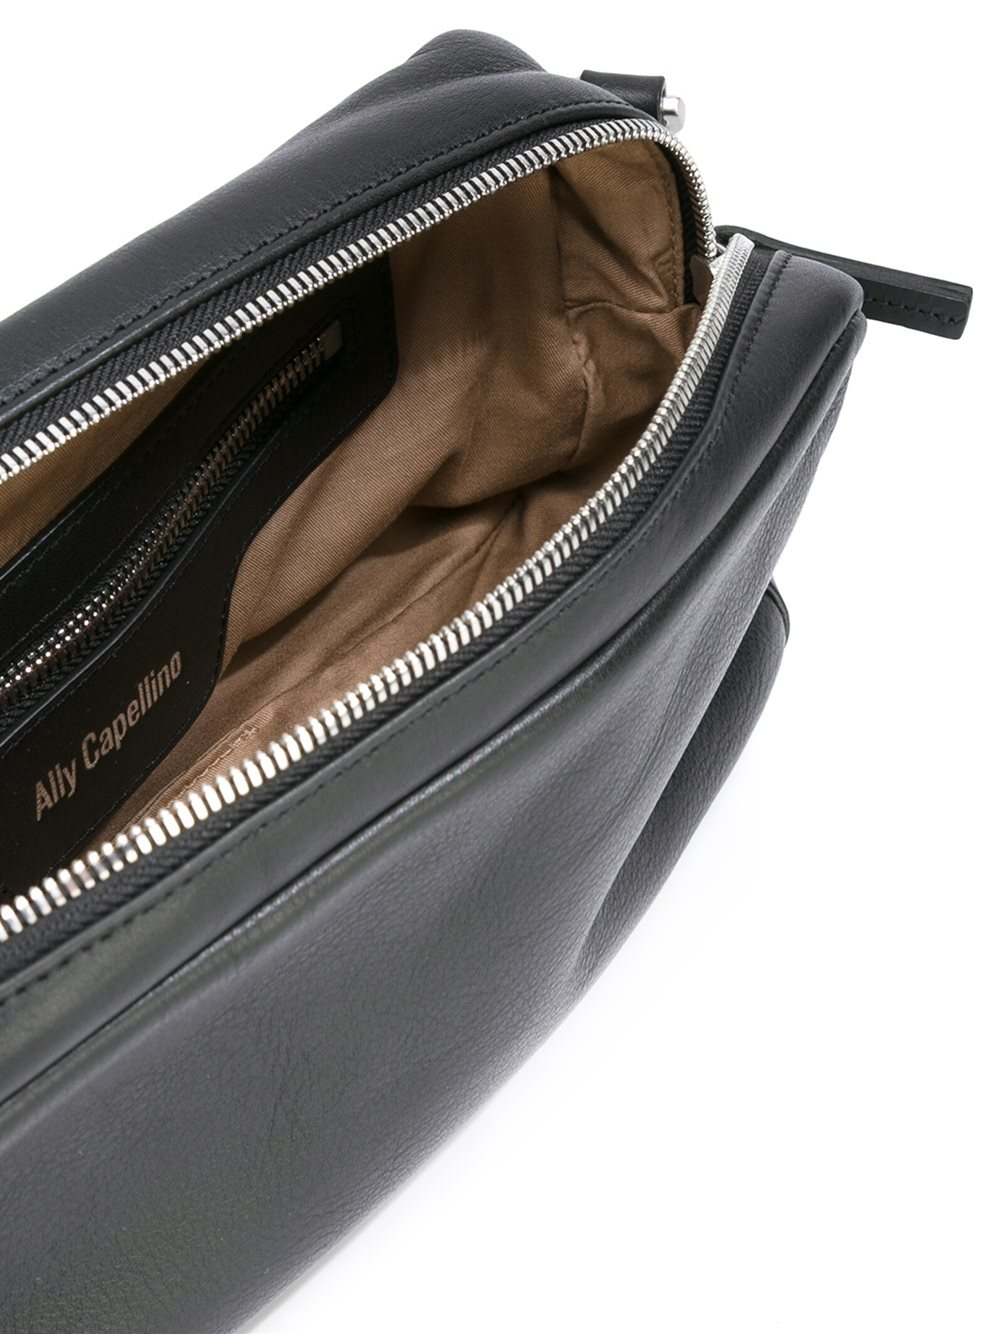 Ally Capellino Leather 'amy' Crossbody Bag in Black